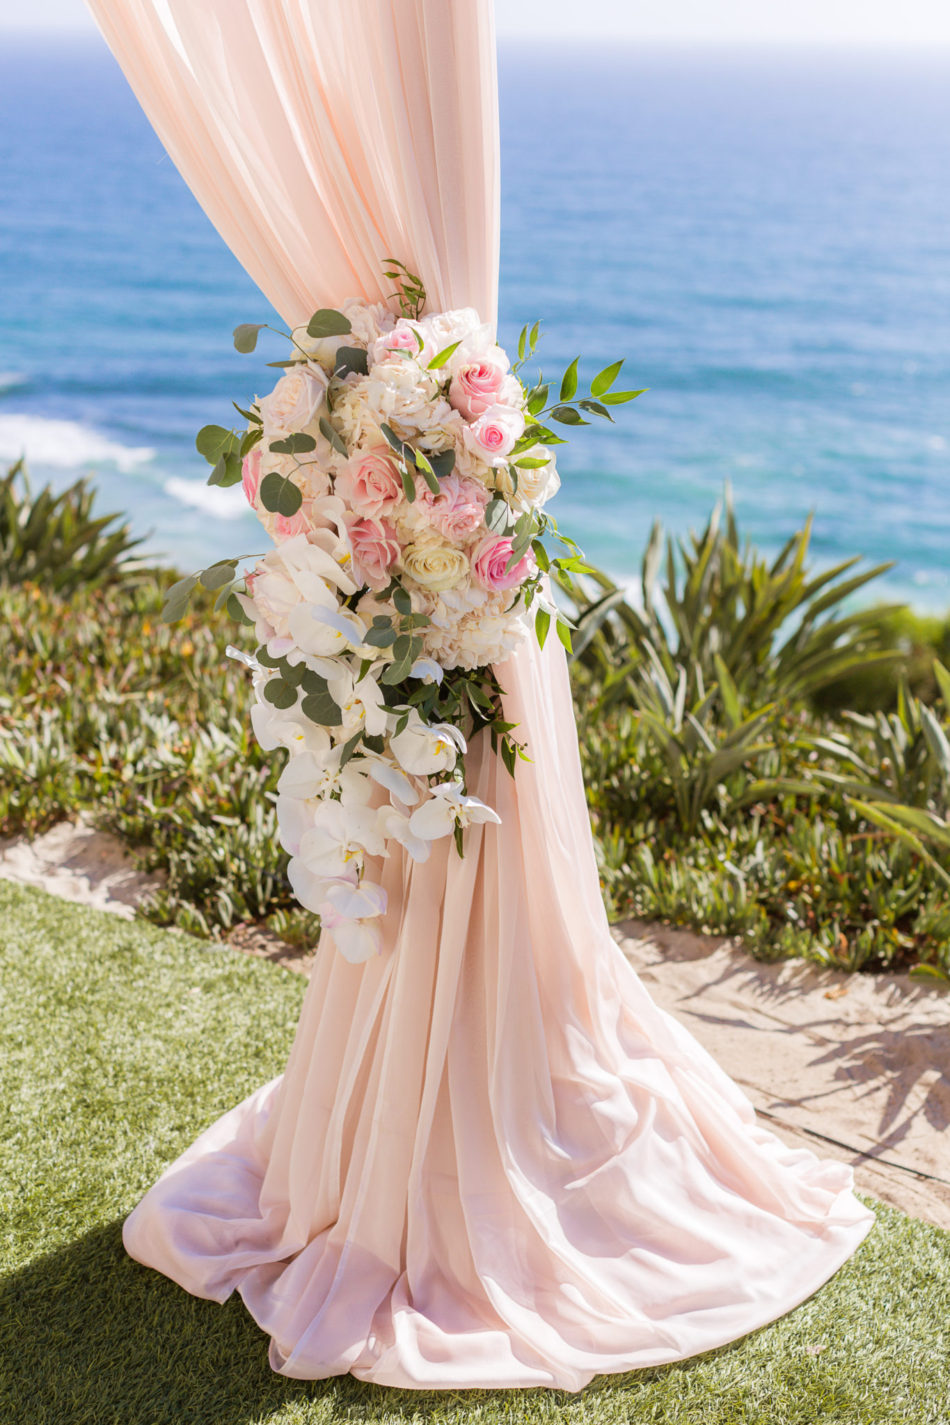 floral arch decor, pink arch decor, pink wedding florals, floral design, florist, wedding florist, wedding flowers, orange county weddings, orange county wedding florist, orange county florist, orange county floral design, flowers by cina